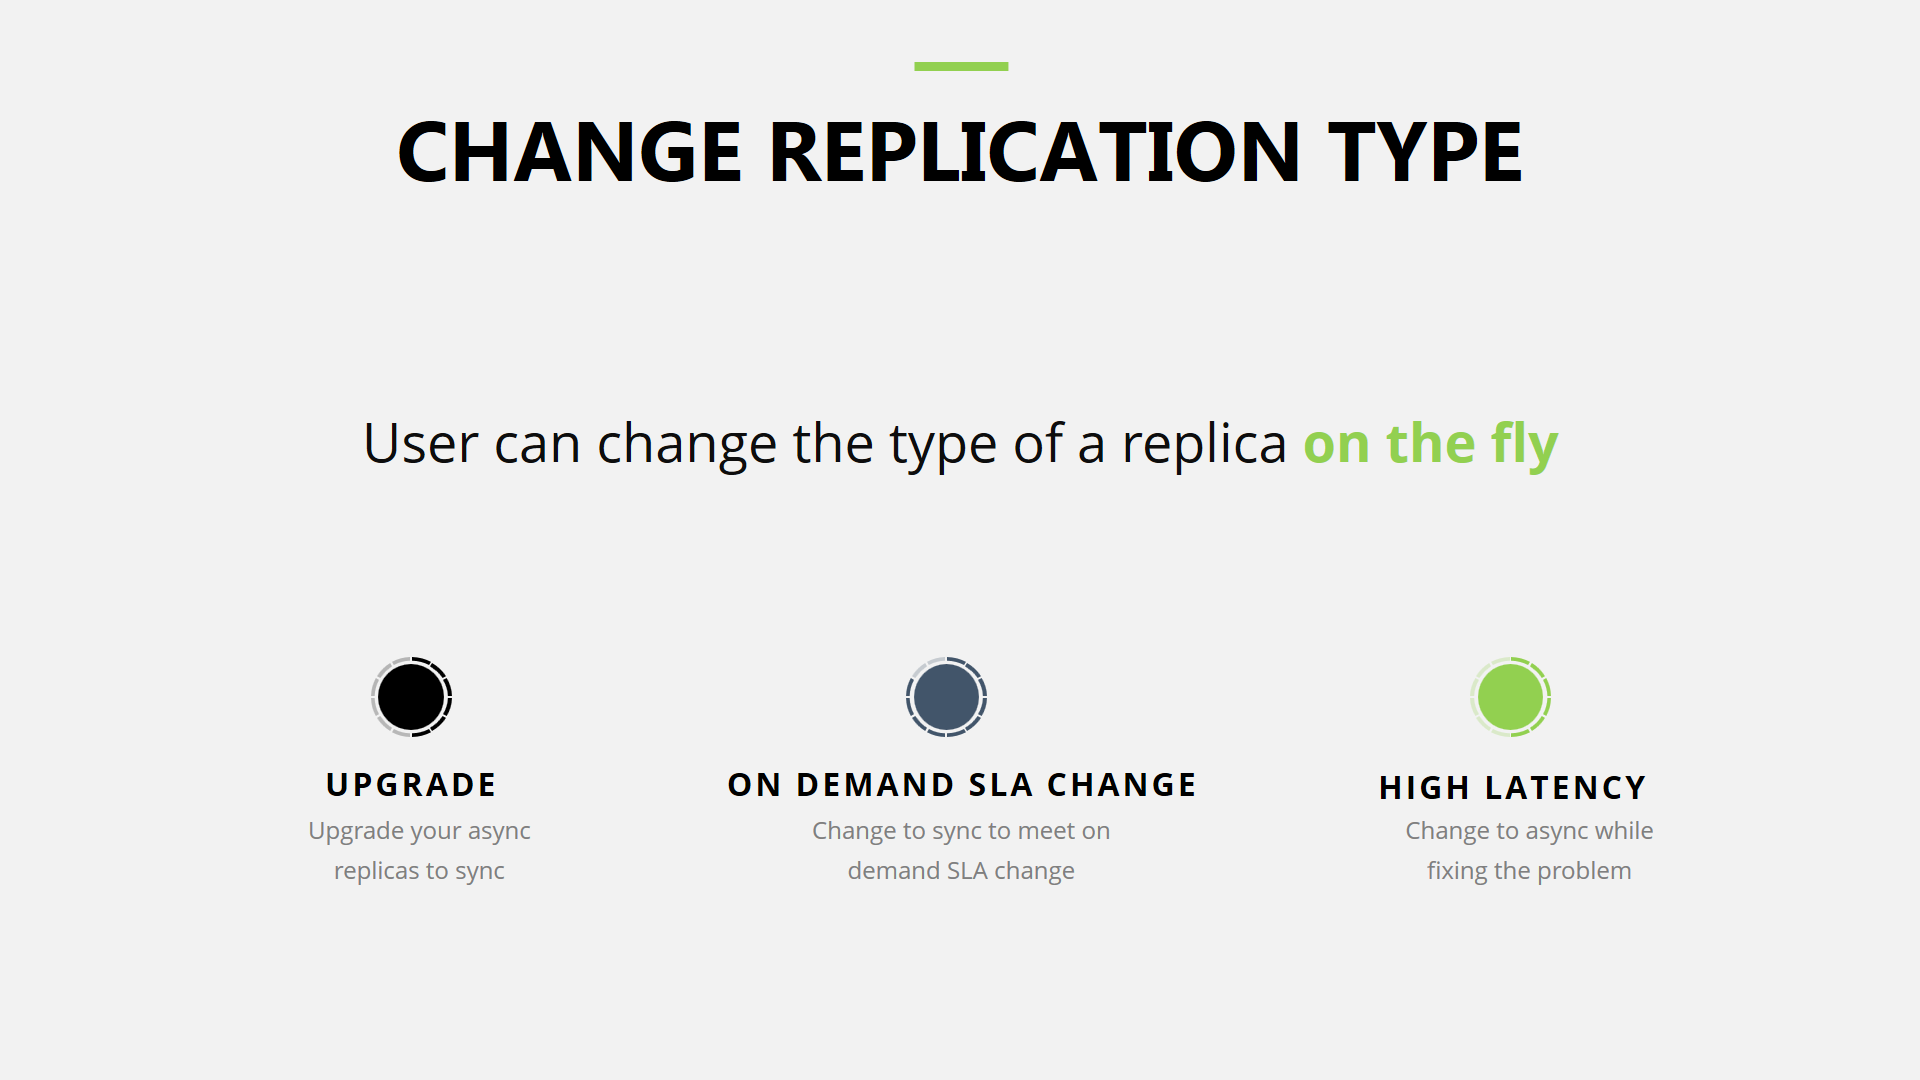 changereplication